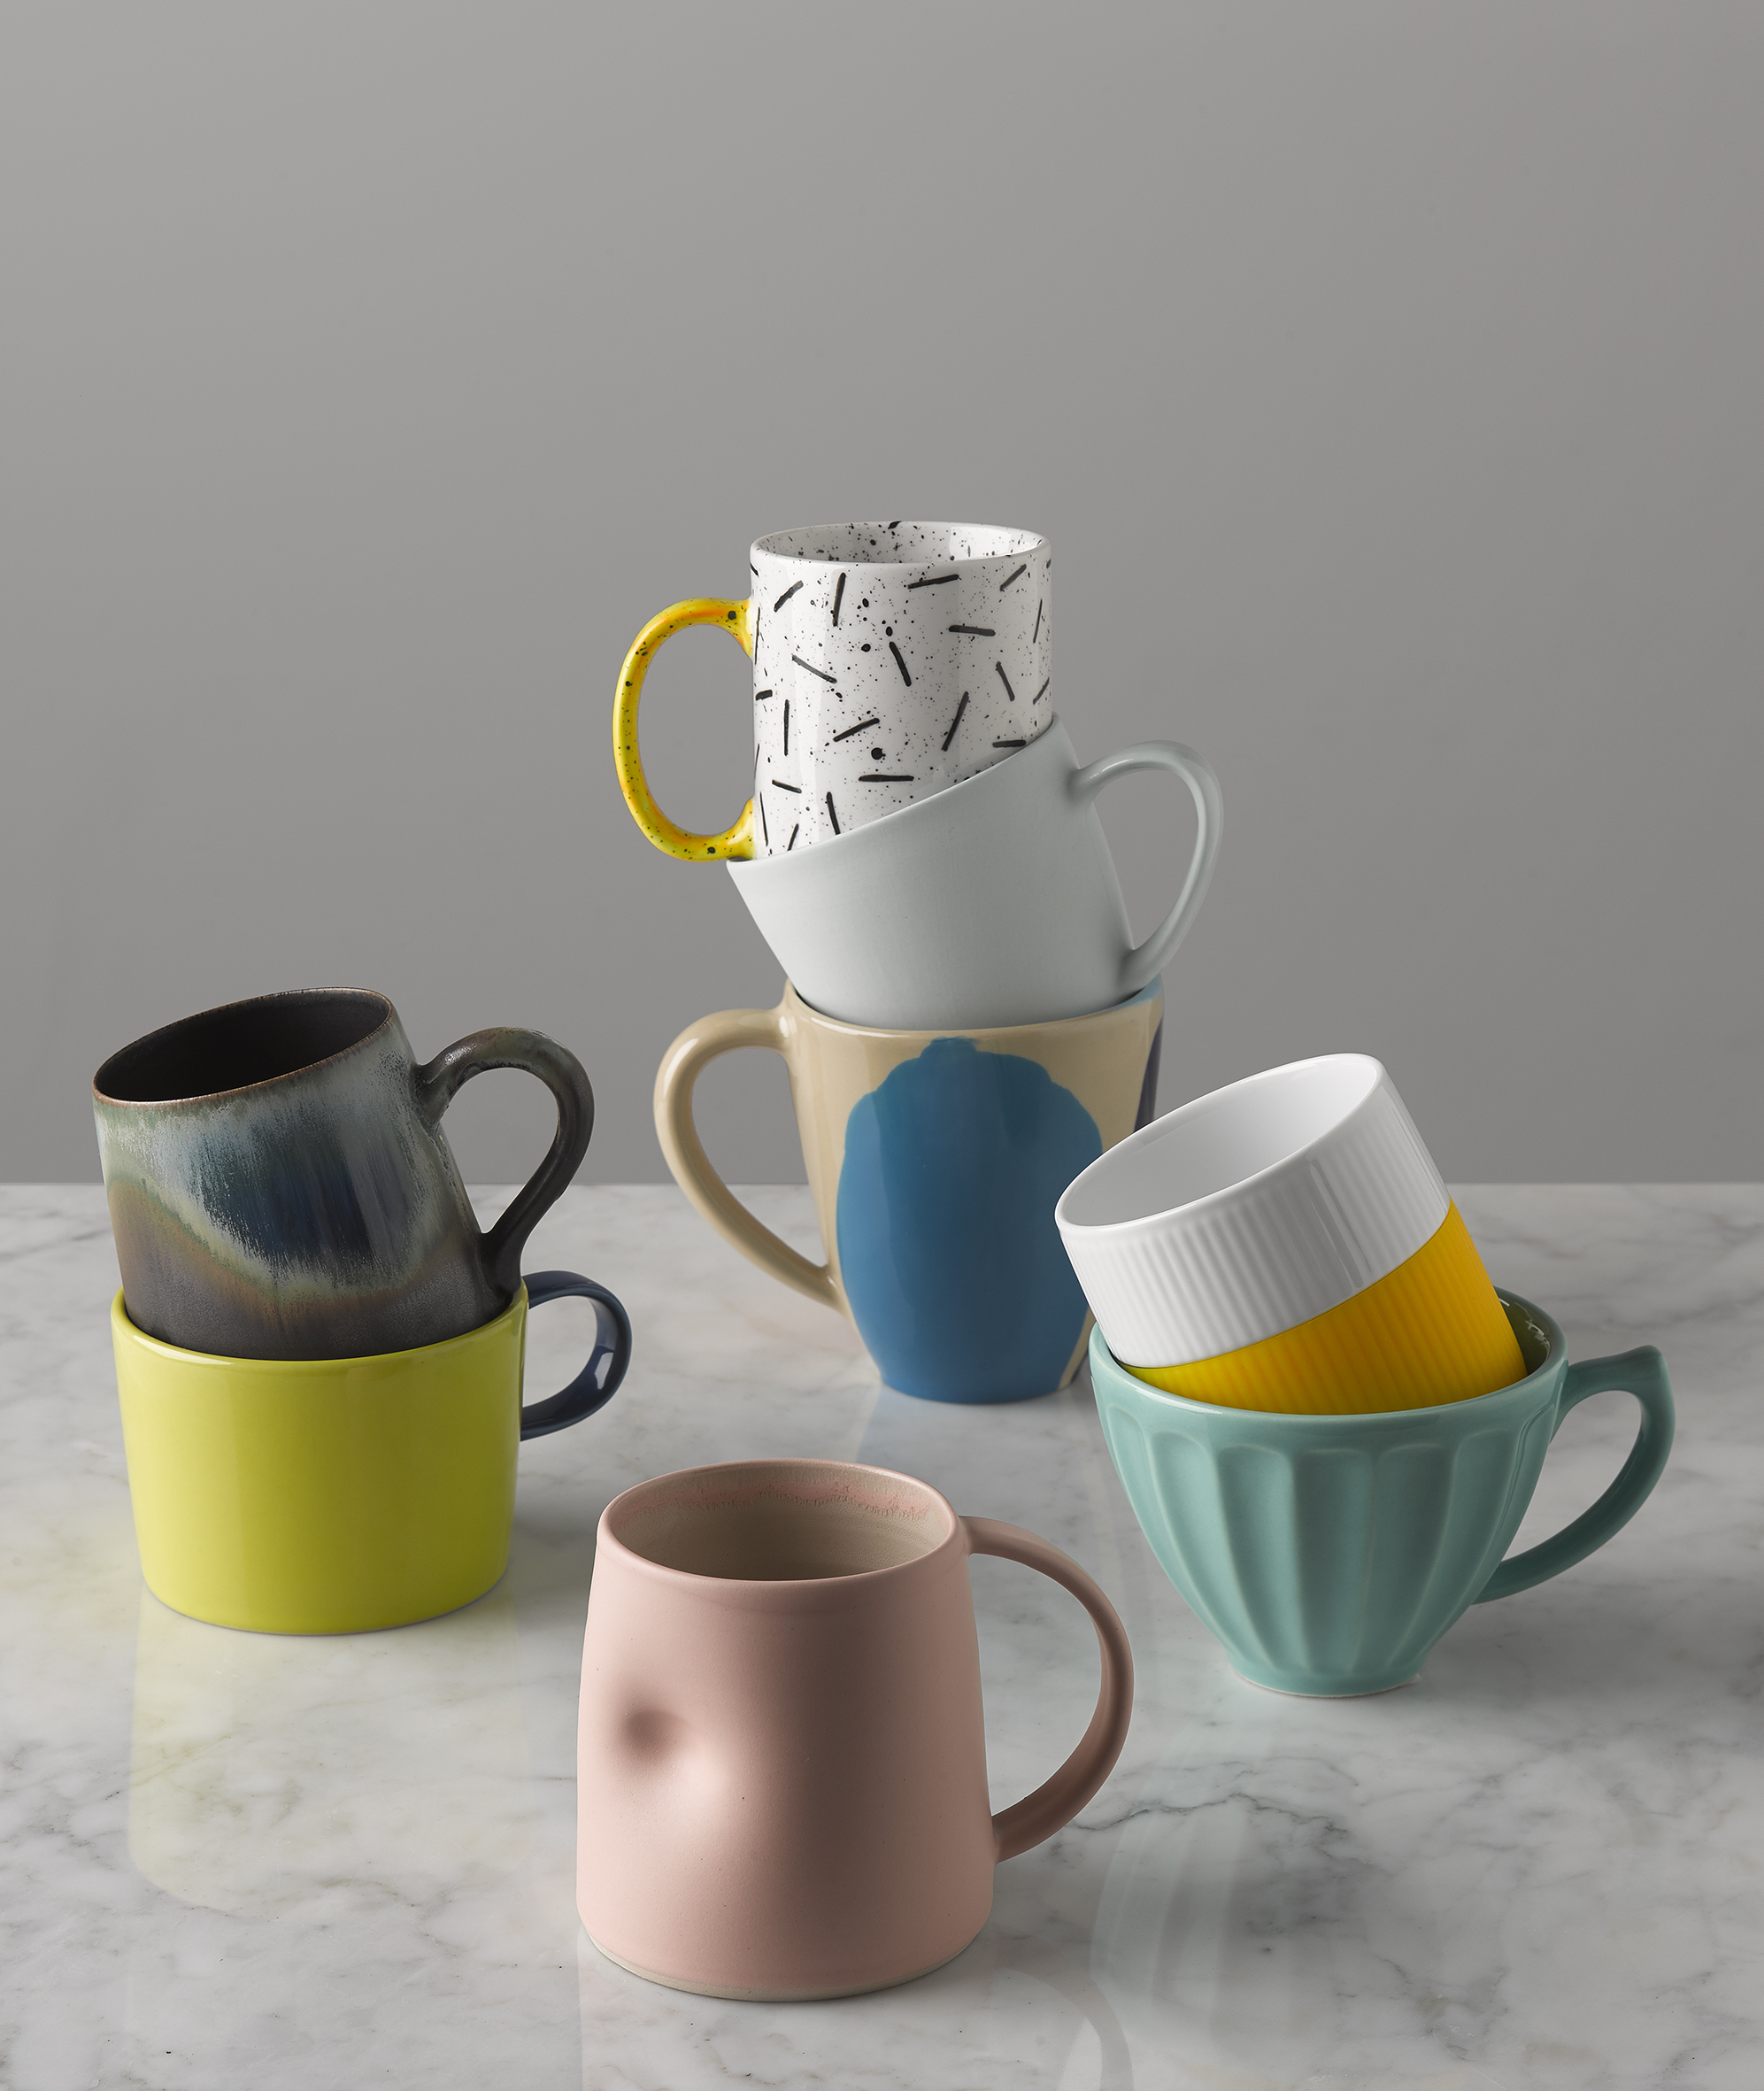 INDIE-interiors mugs.jpg